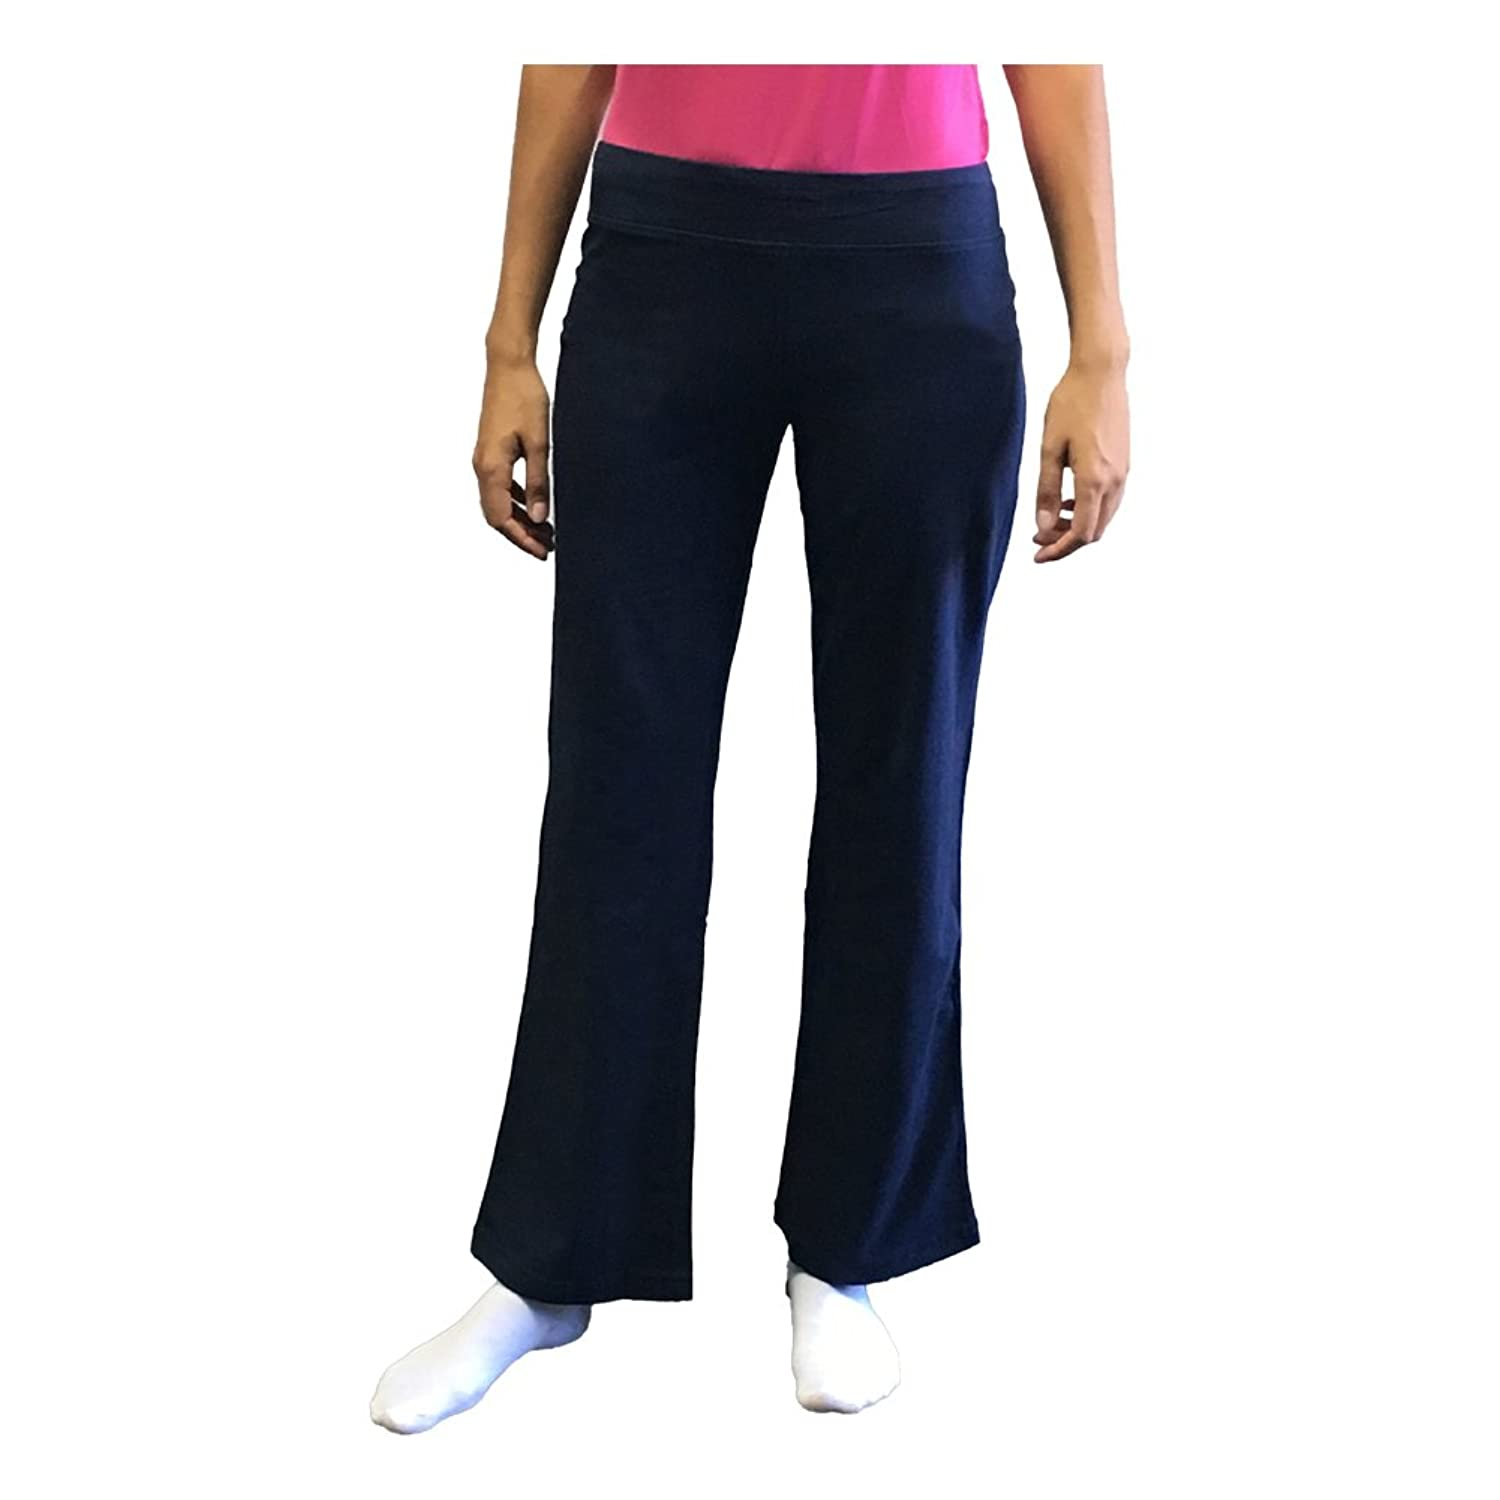 709e1ab44c These plus size pants are great for walking, lounging, workout, yoga, or  just relaxing around the house. Featuring moisture-wicking fabric and an  elastic ...